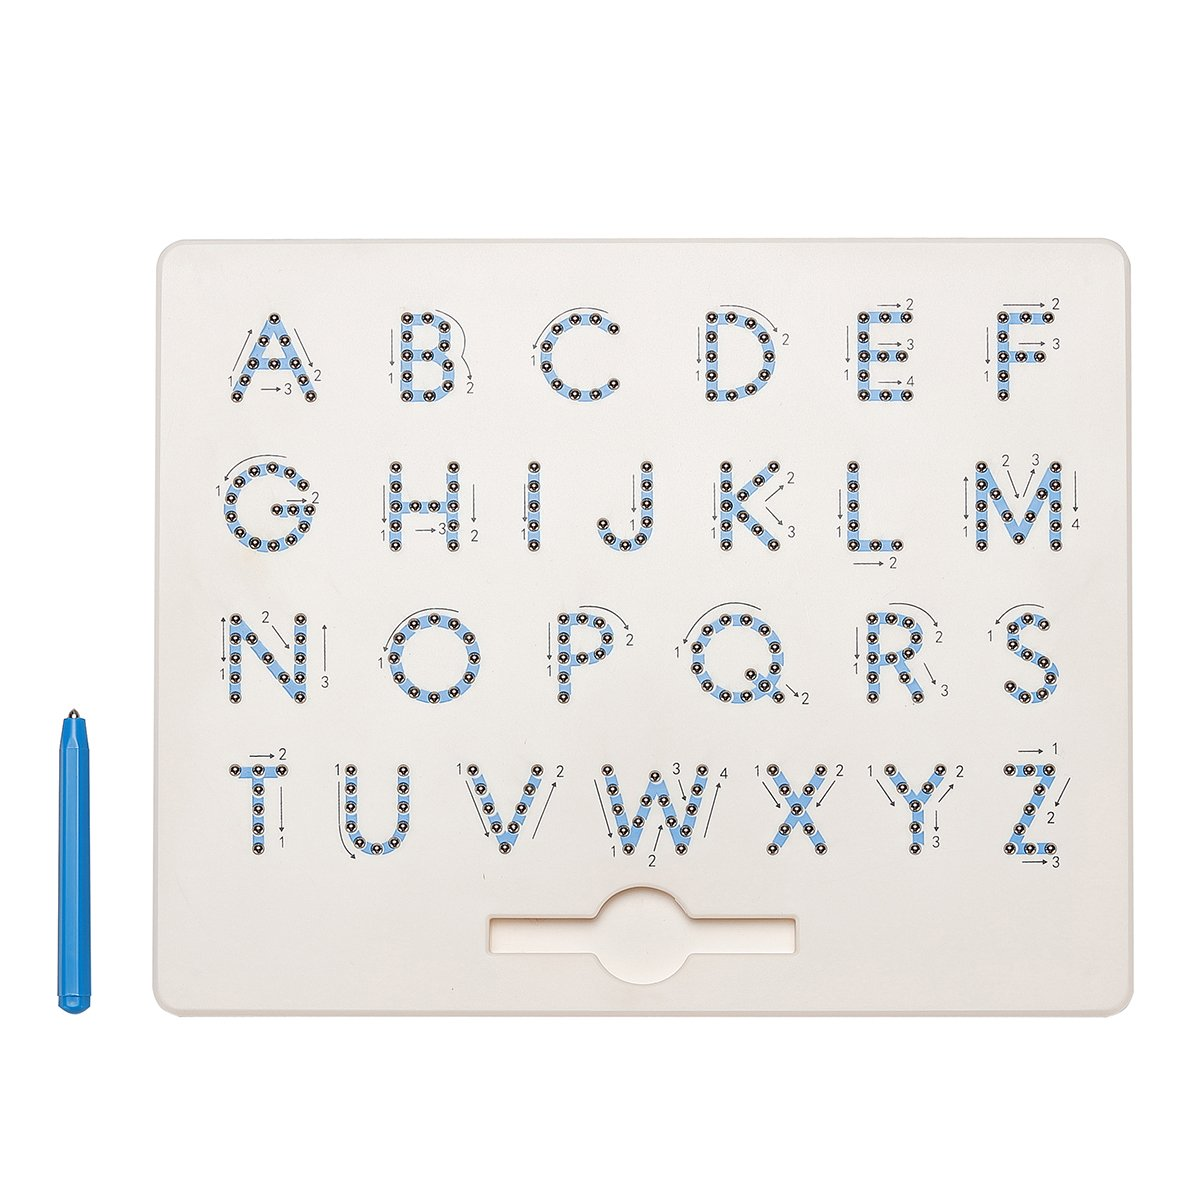 Toys A to Z Letter Lower Upper Case Numbers Magna Doodle ...